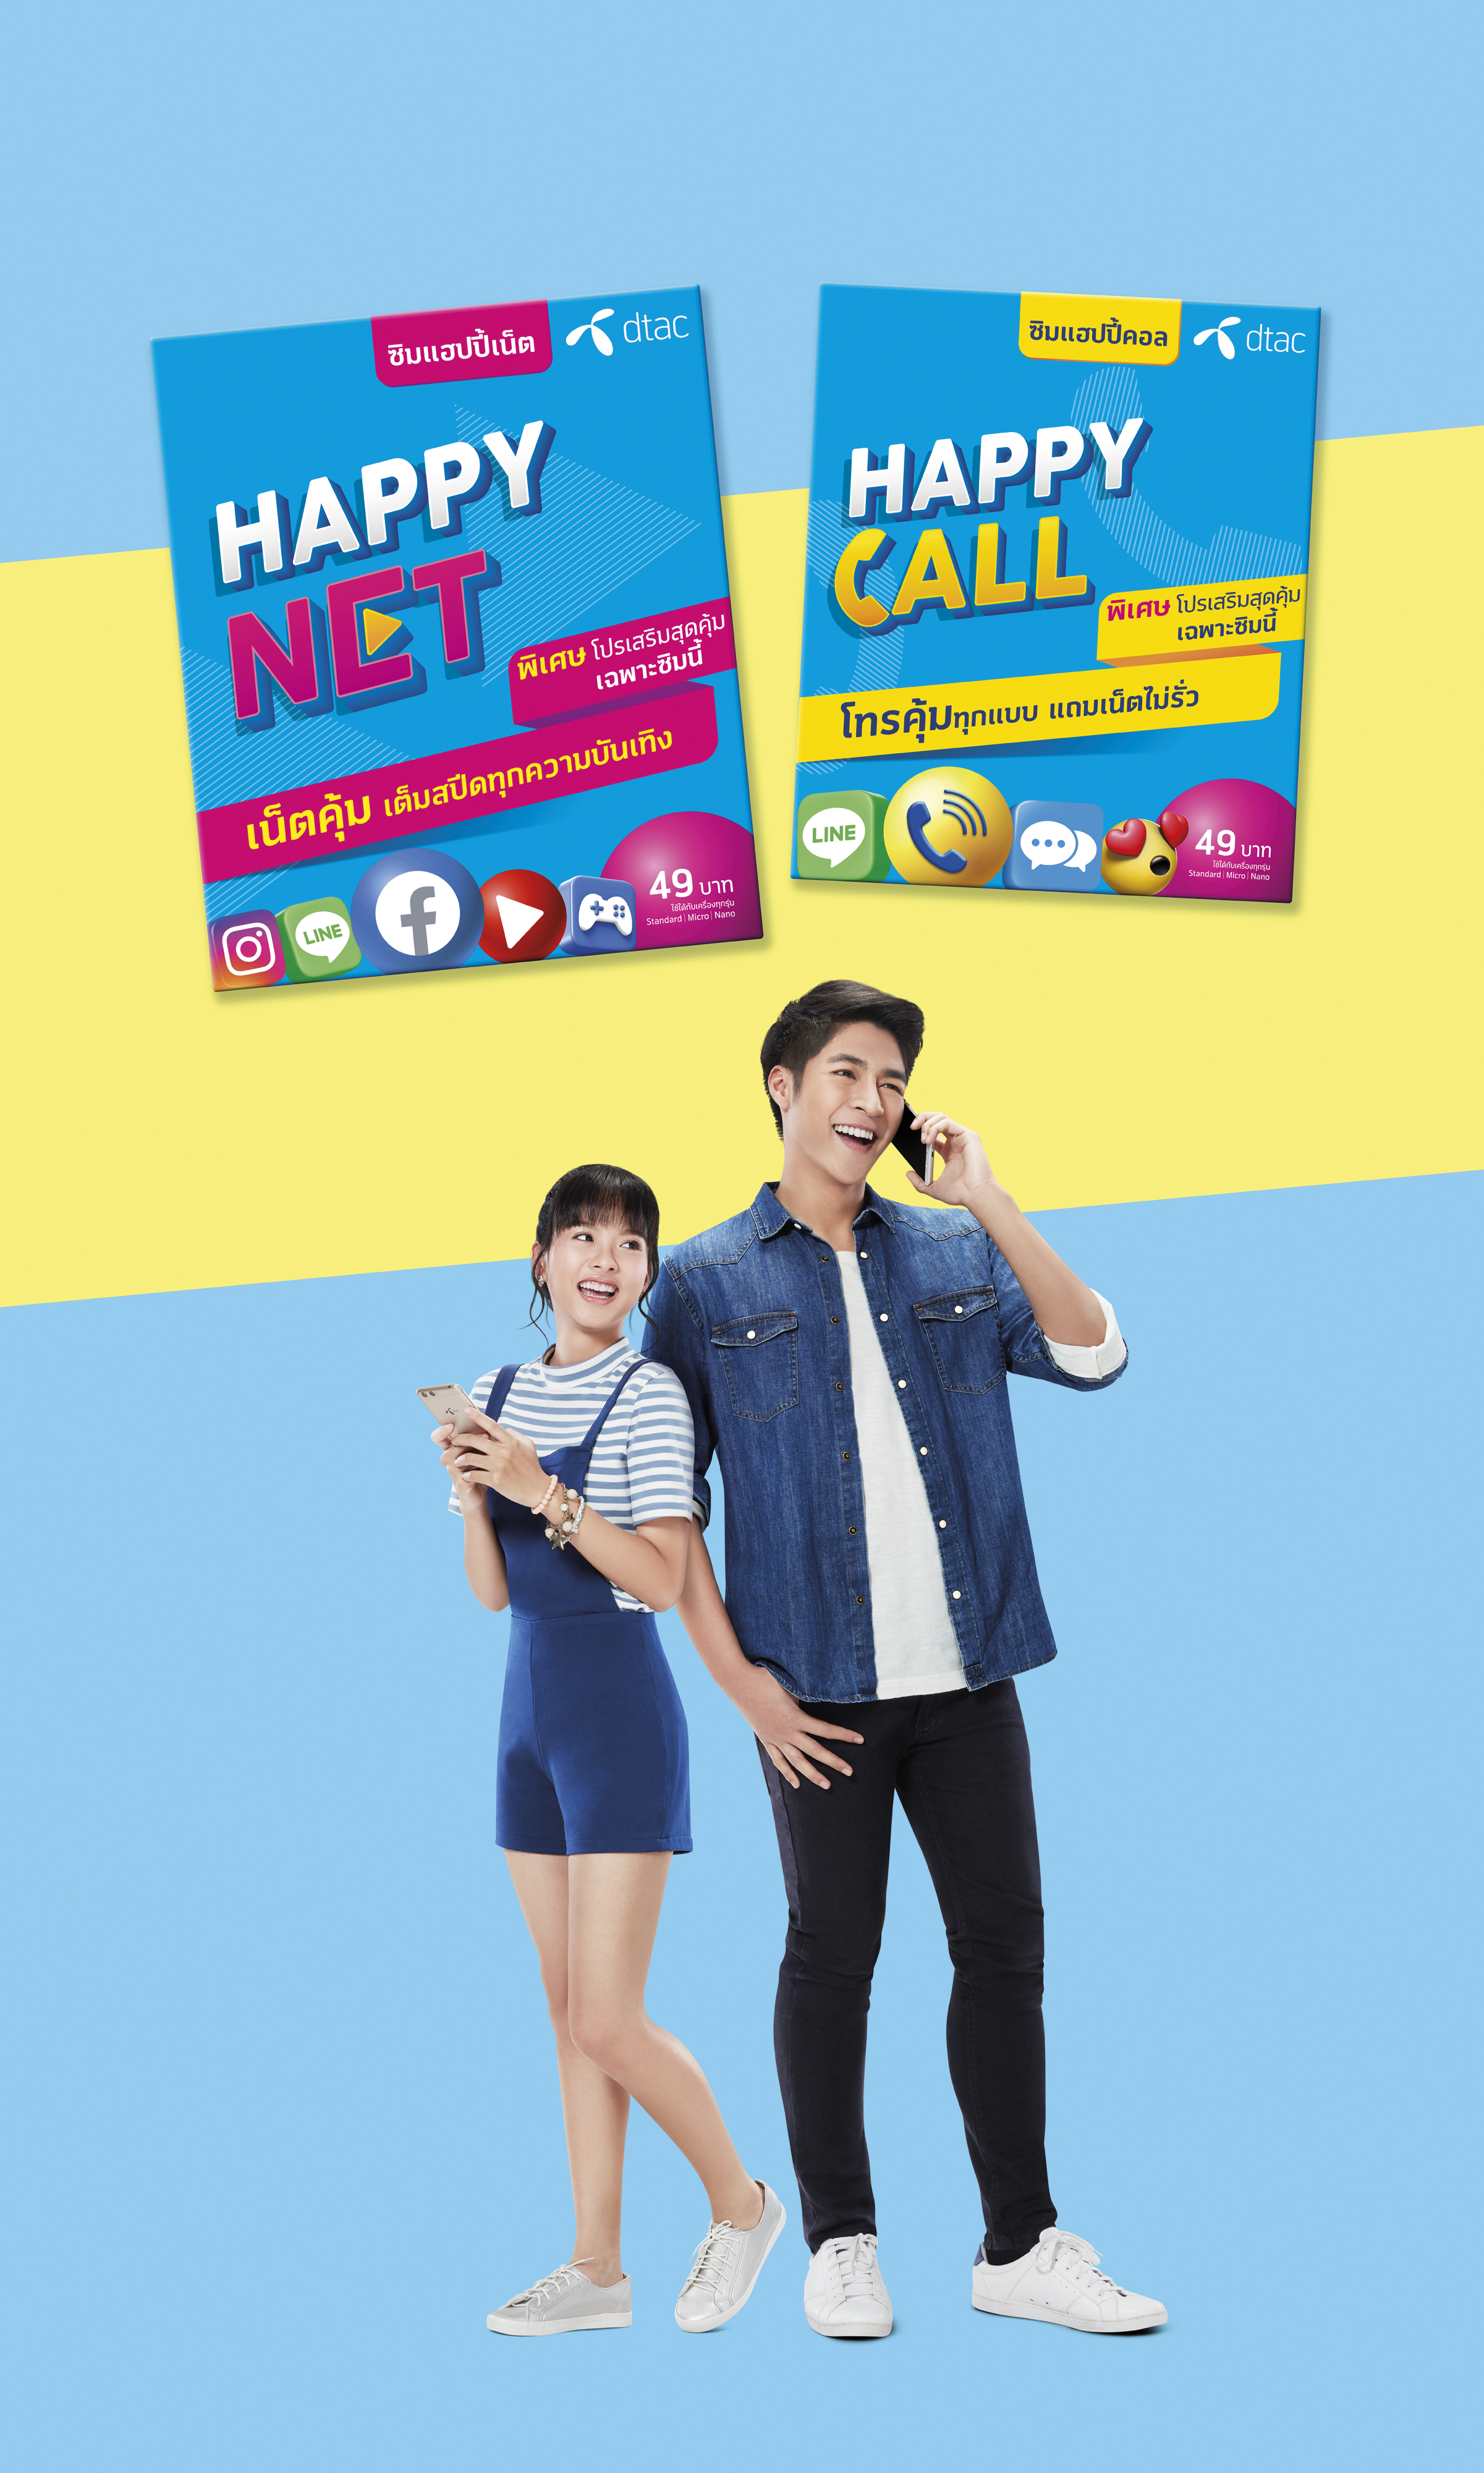 Present_dtac_Happy_Call_SIM copy